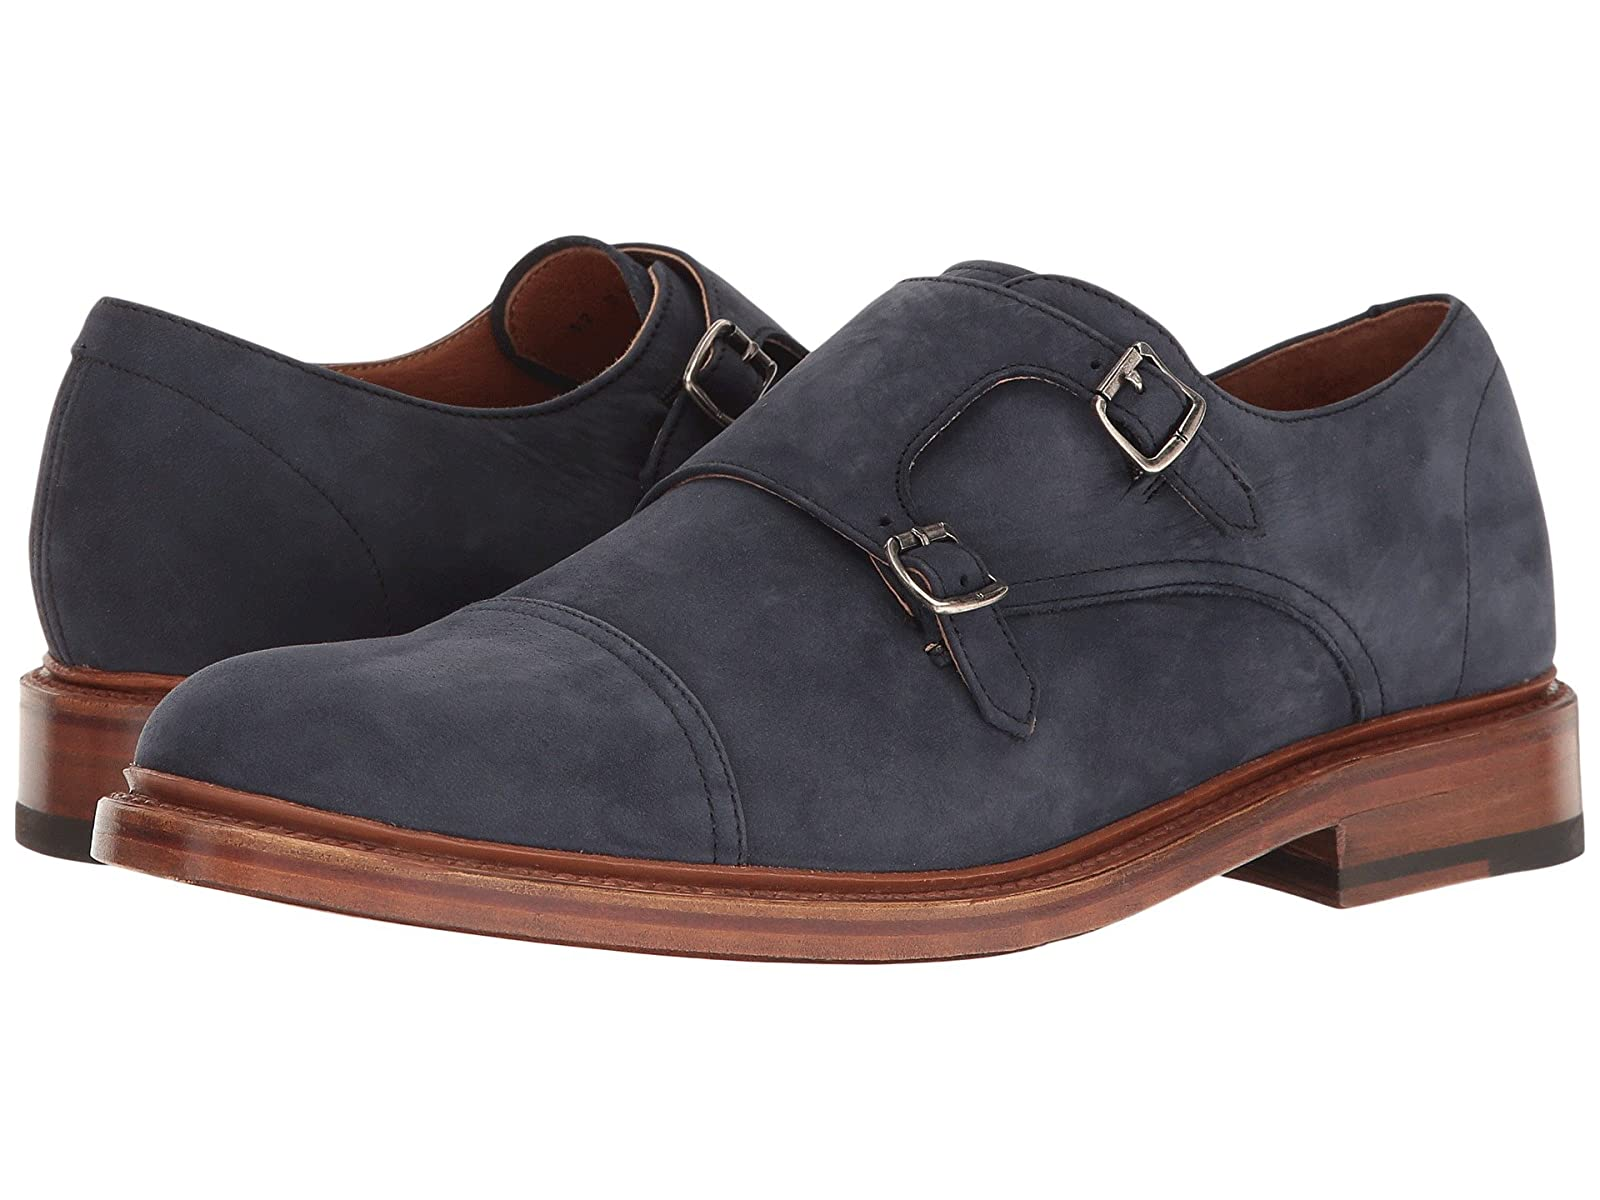 Frye Jones Double MonkCheap and distinctive eye-catching shoes